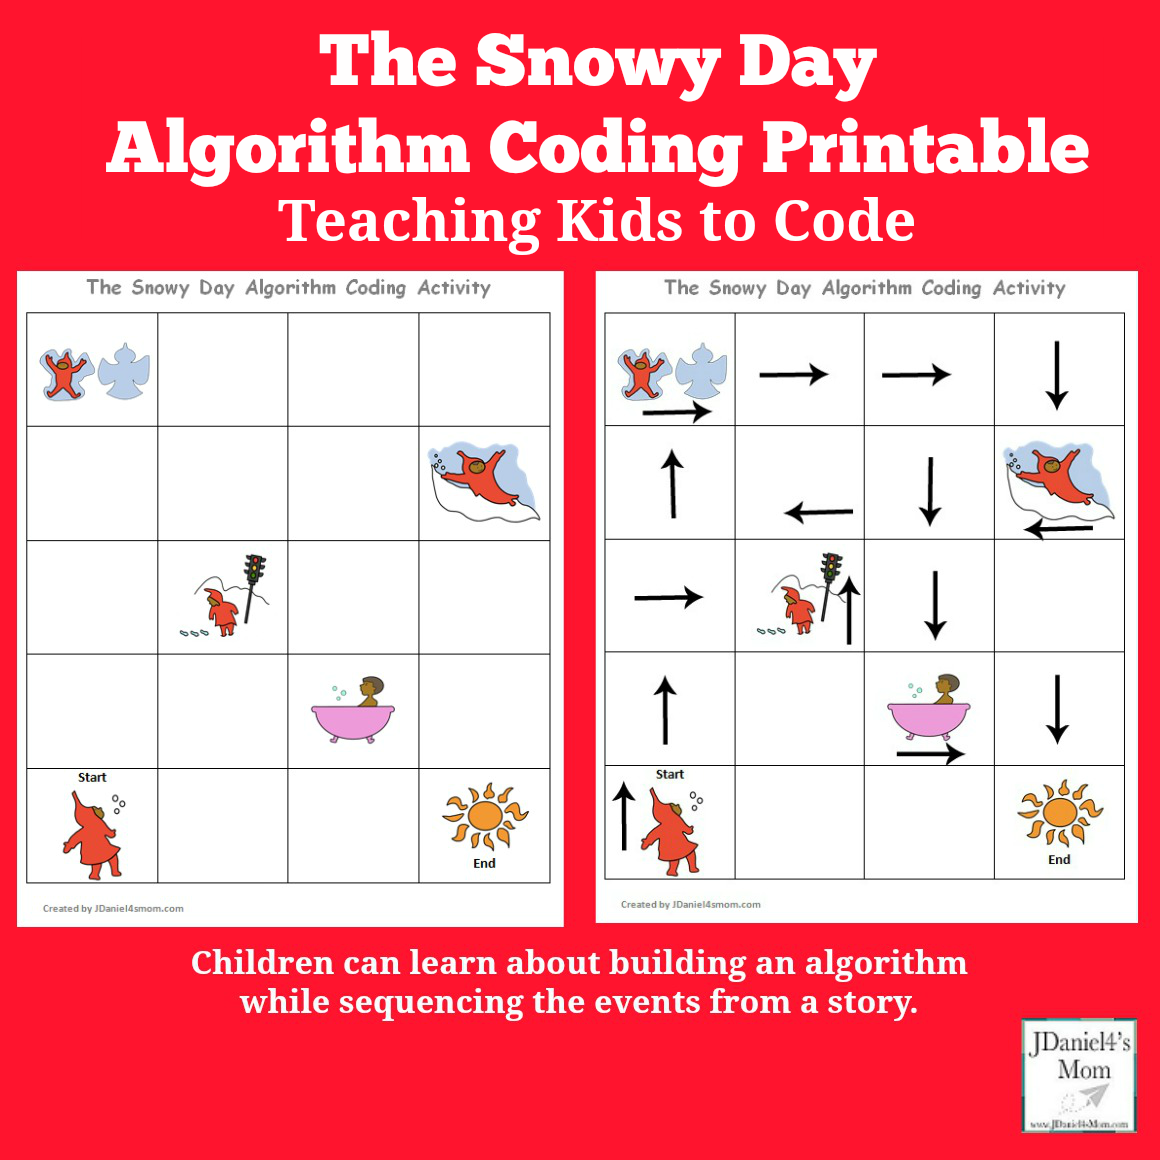 Teaching Kids to Code -The Snowy Day Algorithm Coding Printable